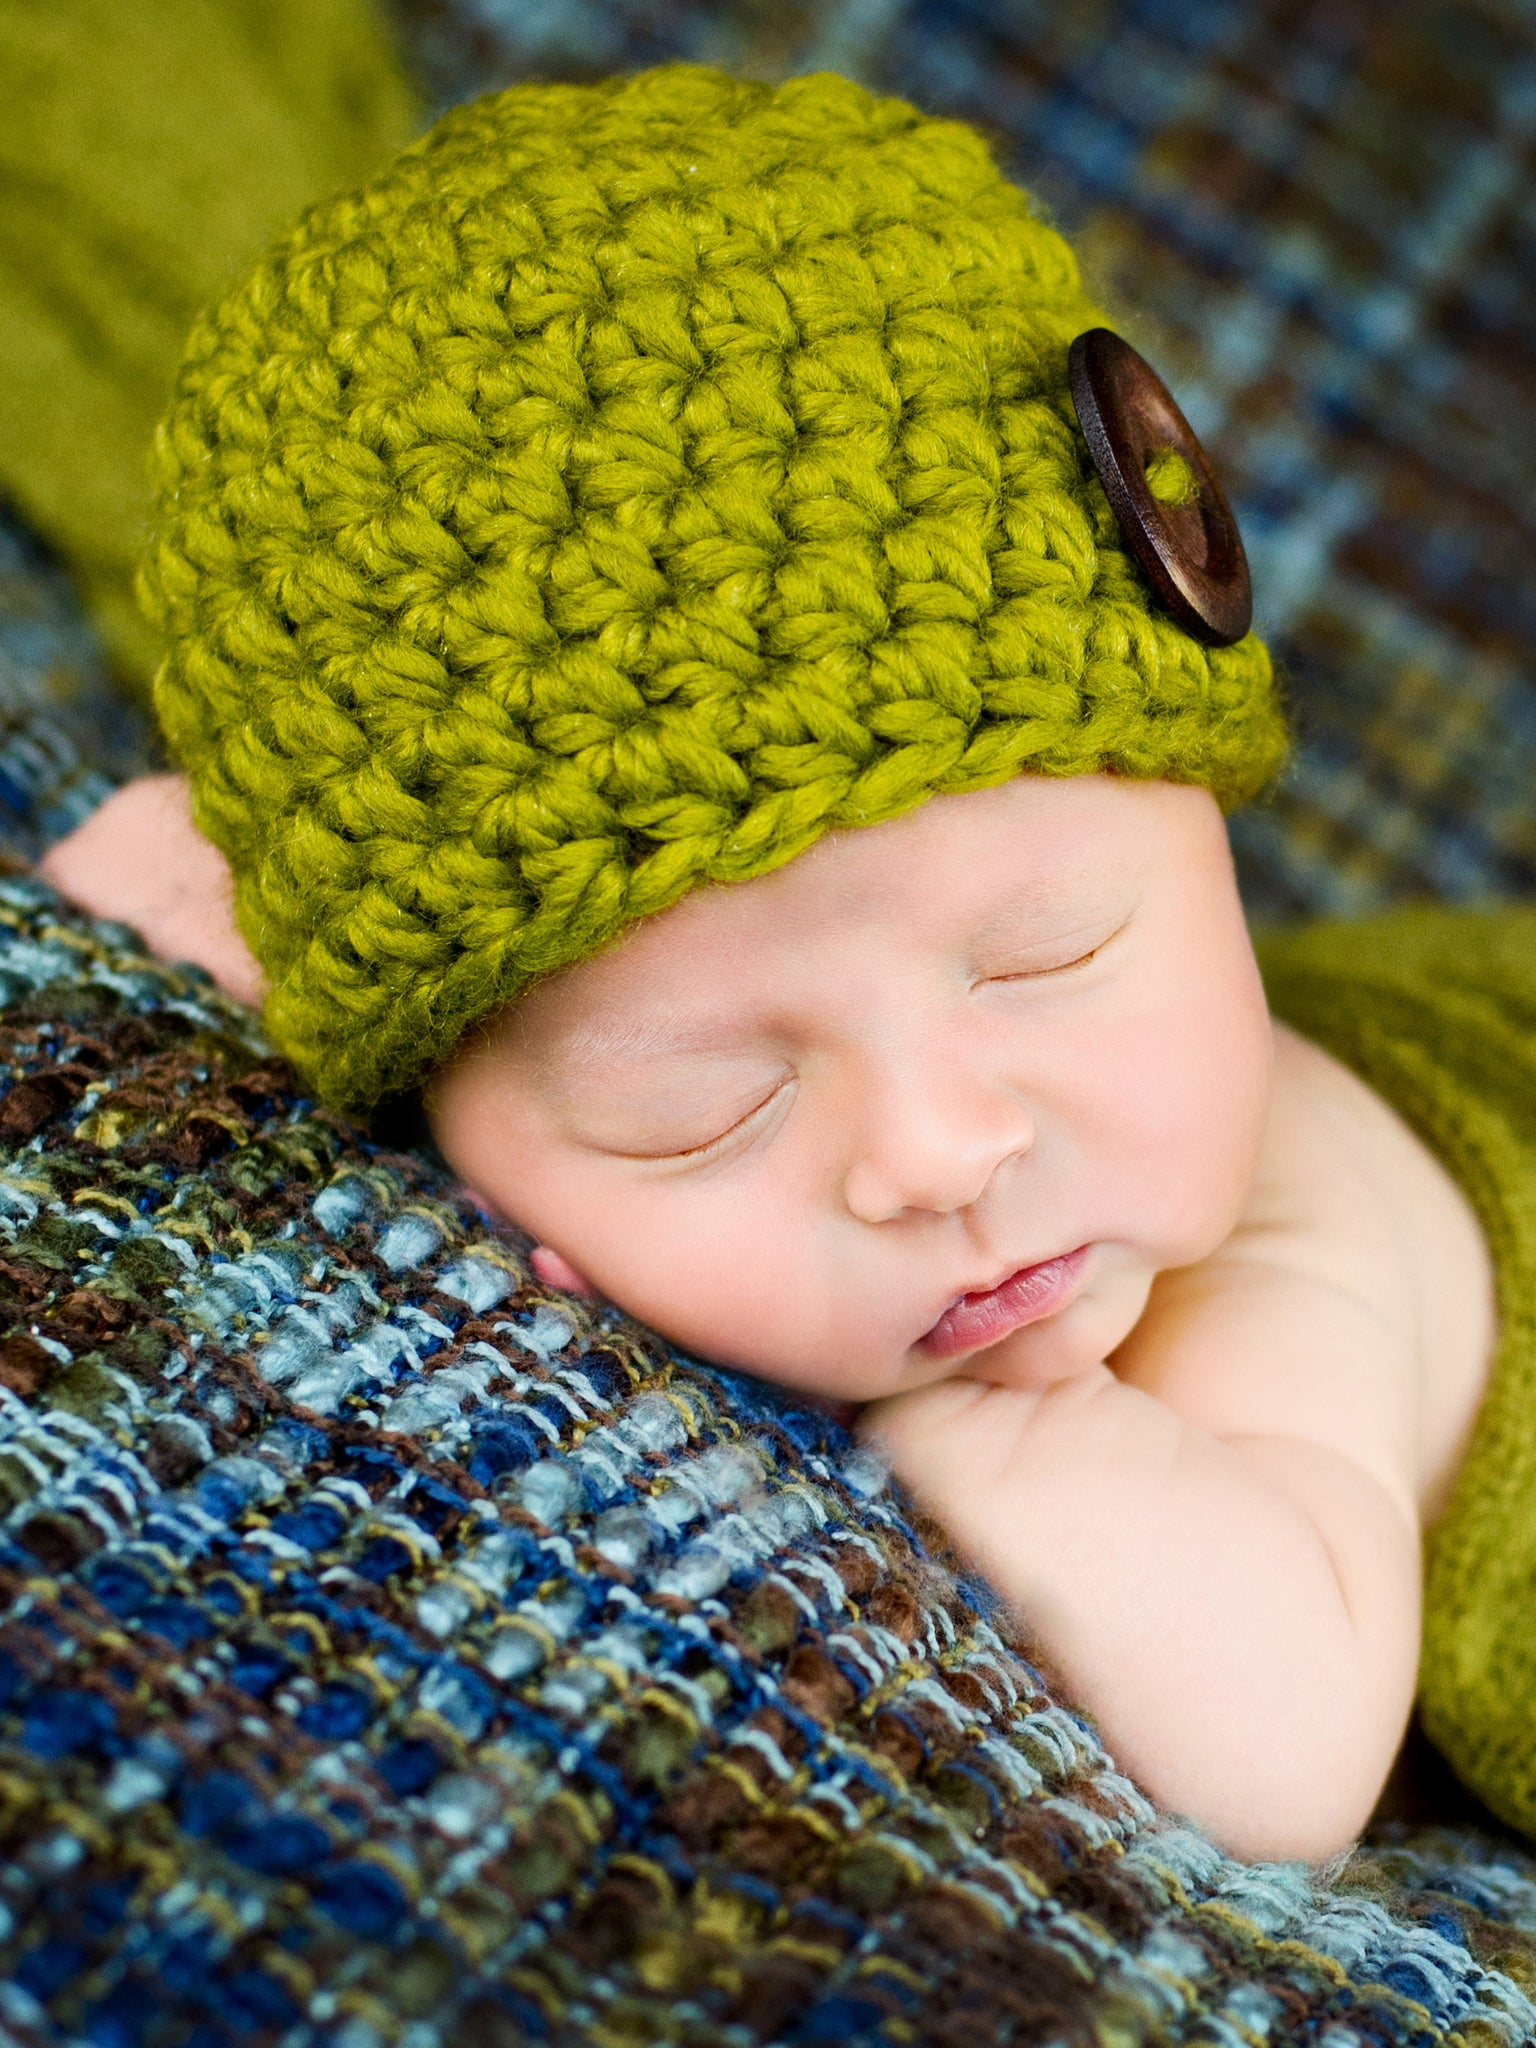 Lemongrass button beanie baby hat by Two Seaside Babes